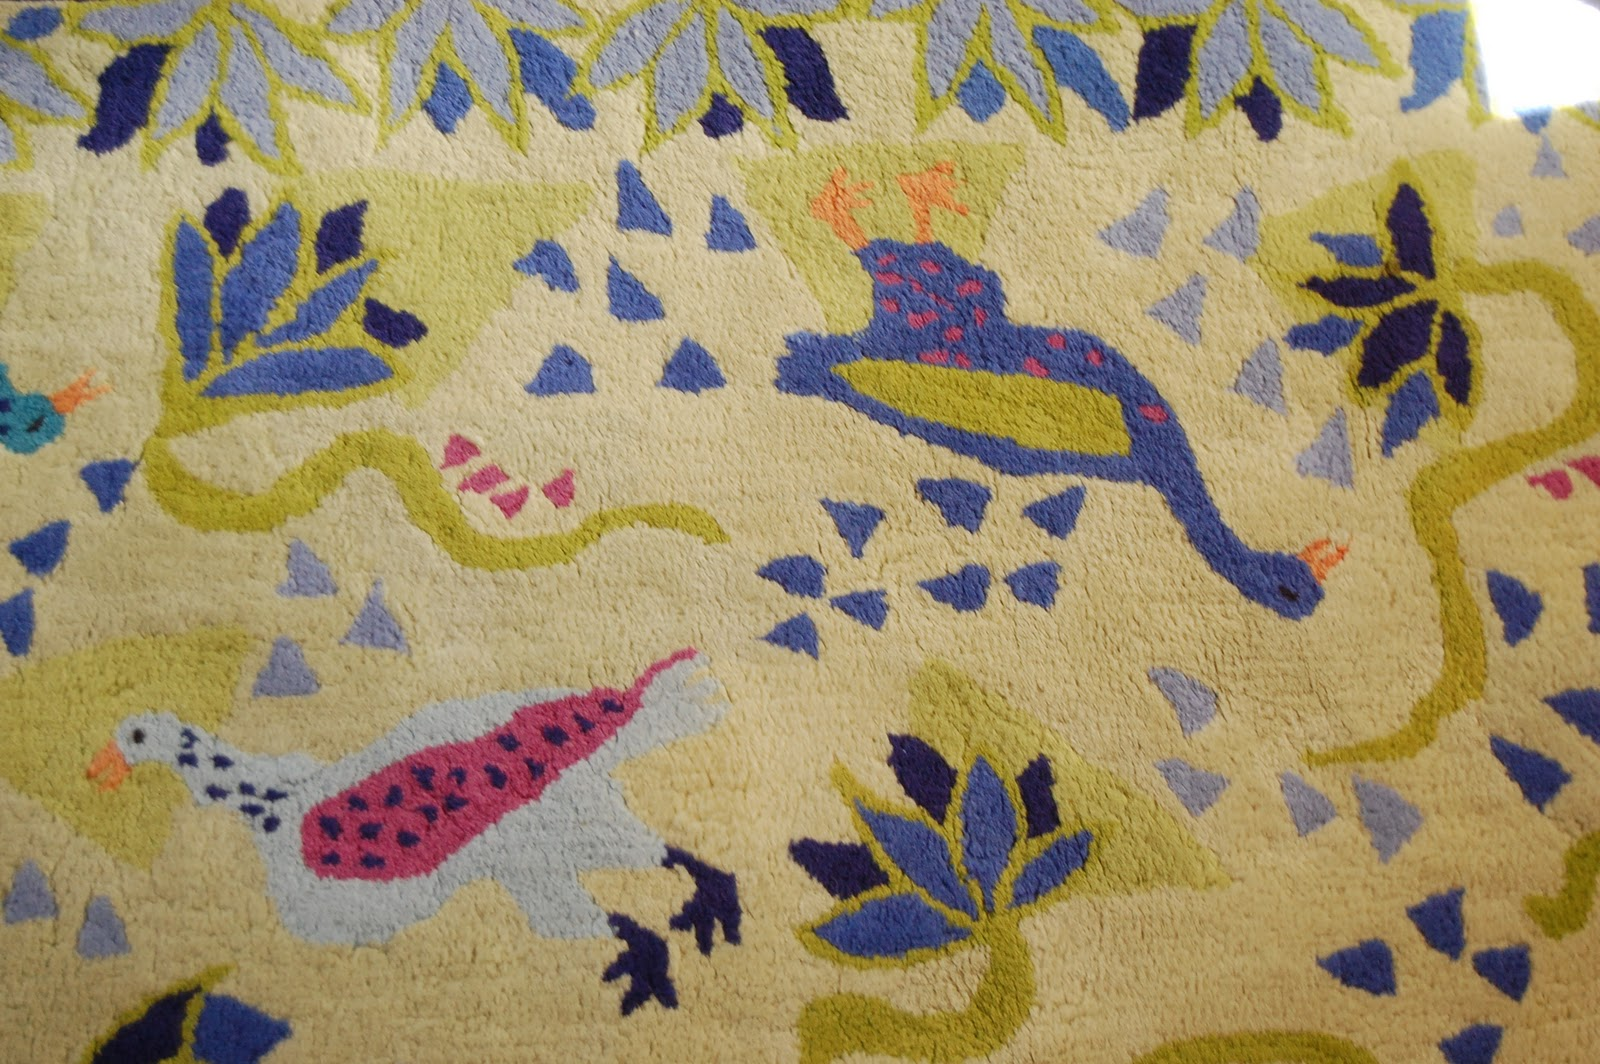 Superior Beautiful Susan Sargent 100% Wool Area Rug. 4u0027 X 6u0027. Handmade In Indian.  Very Plush. Playful Bird Design In Stunning Blues And Greens.